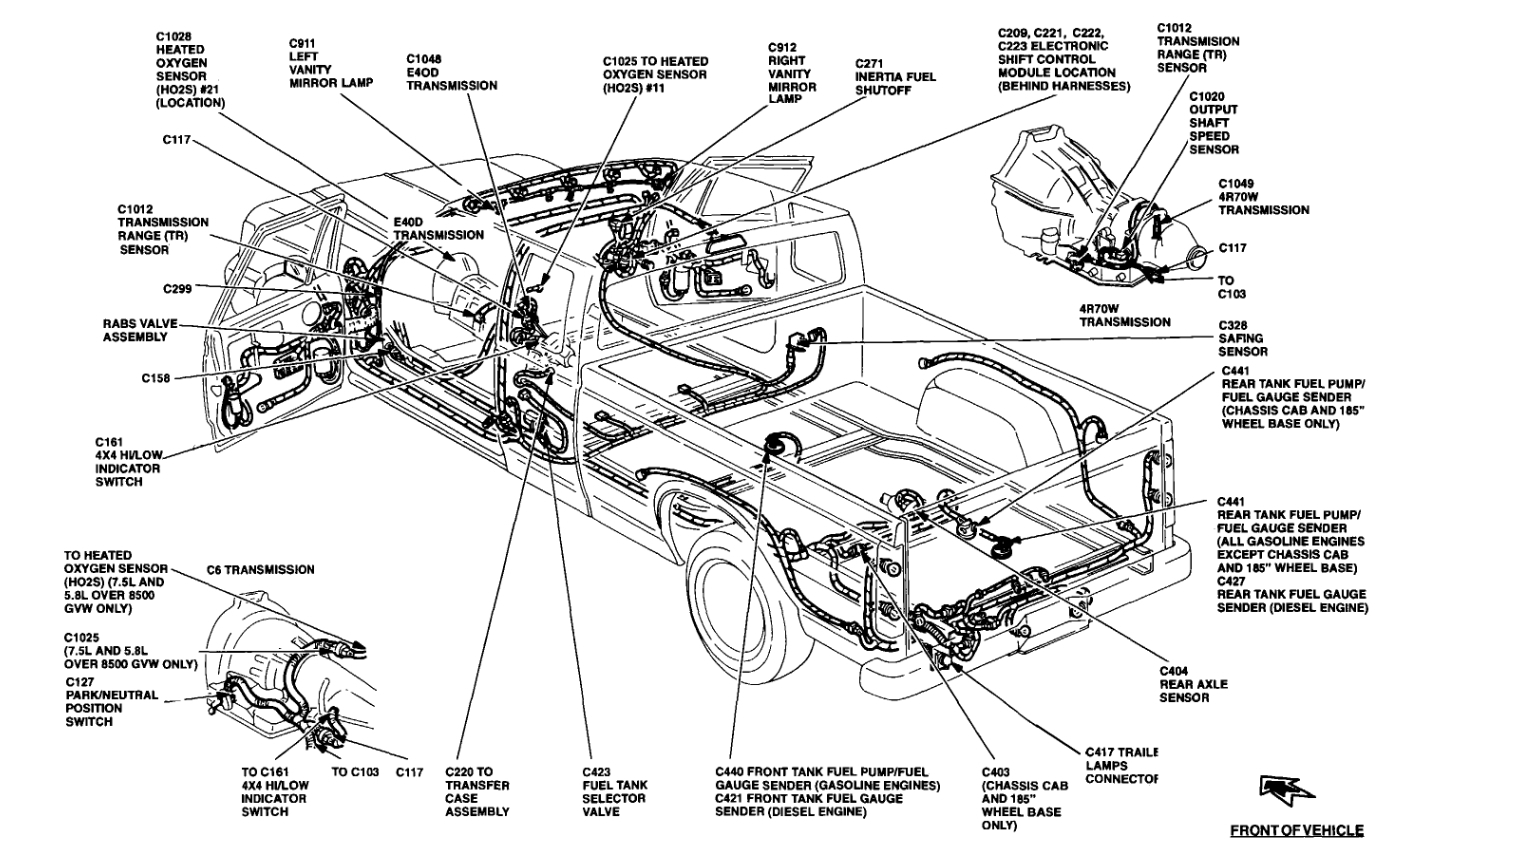 Ford E350 Van Fuel System Diagram